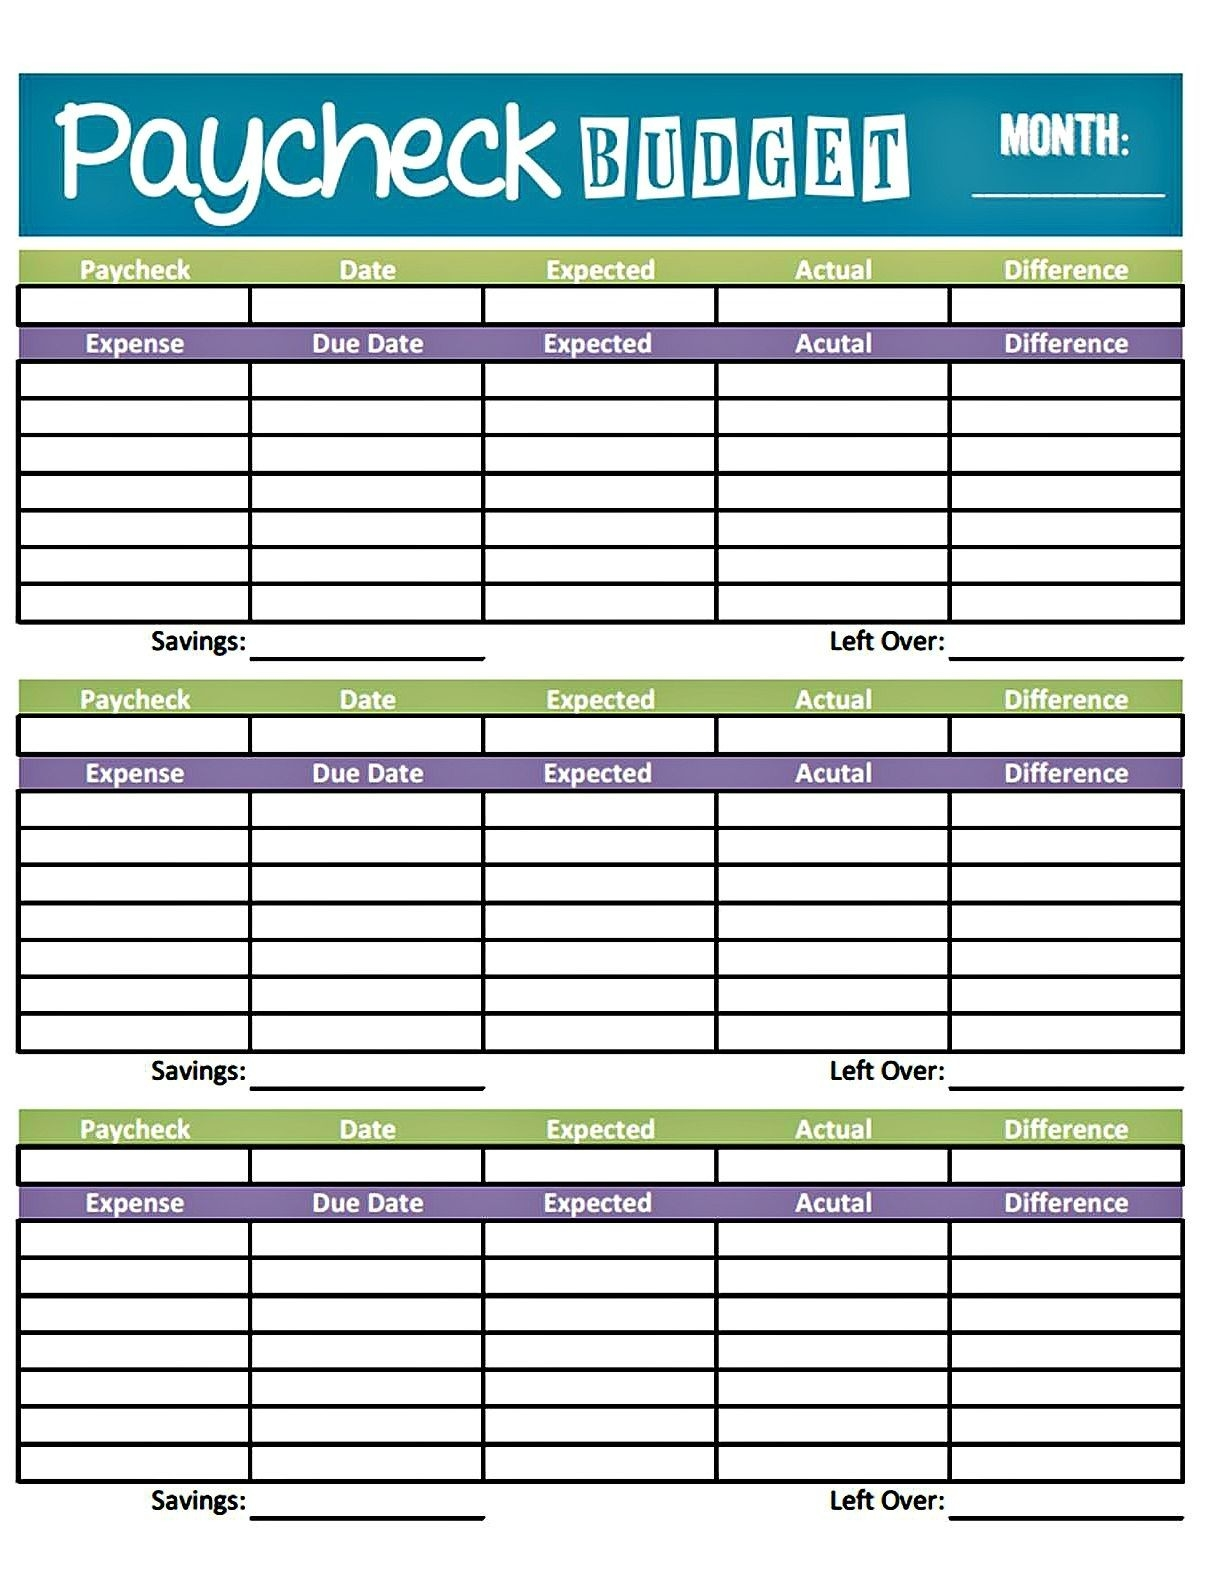 Livin' Paycheck To Paycheck - Free Printable Budget Form  Weekly Bill Paying Worksheet